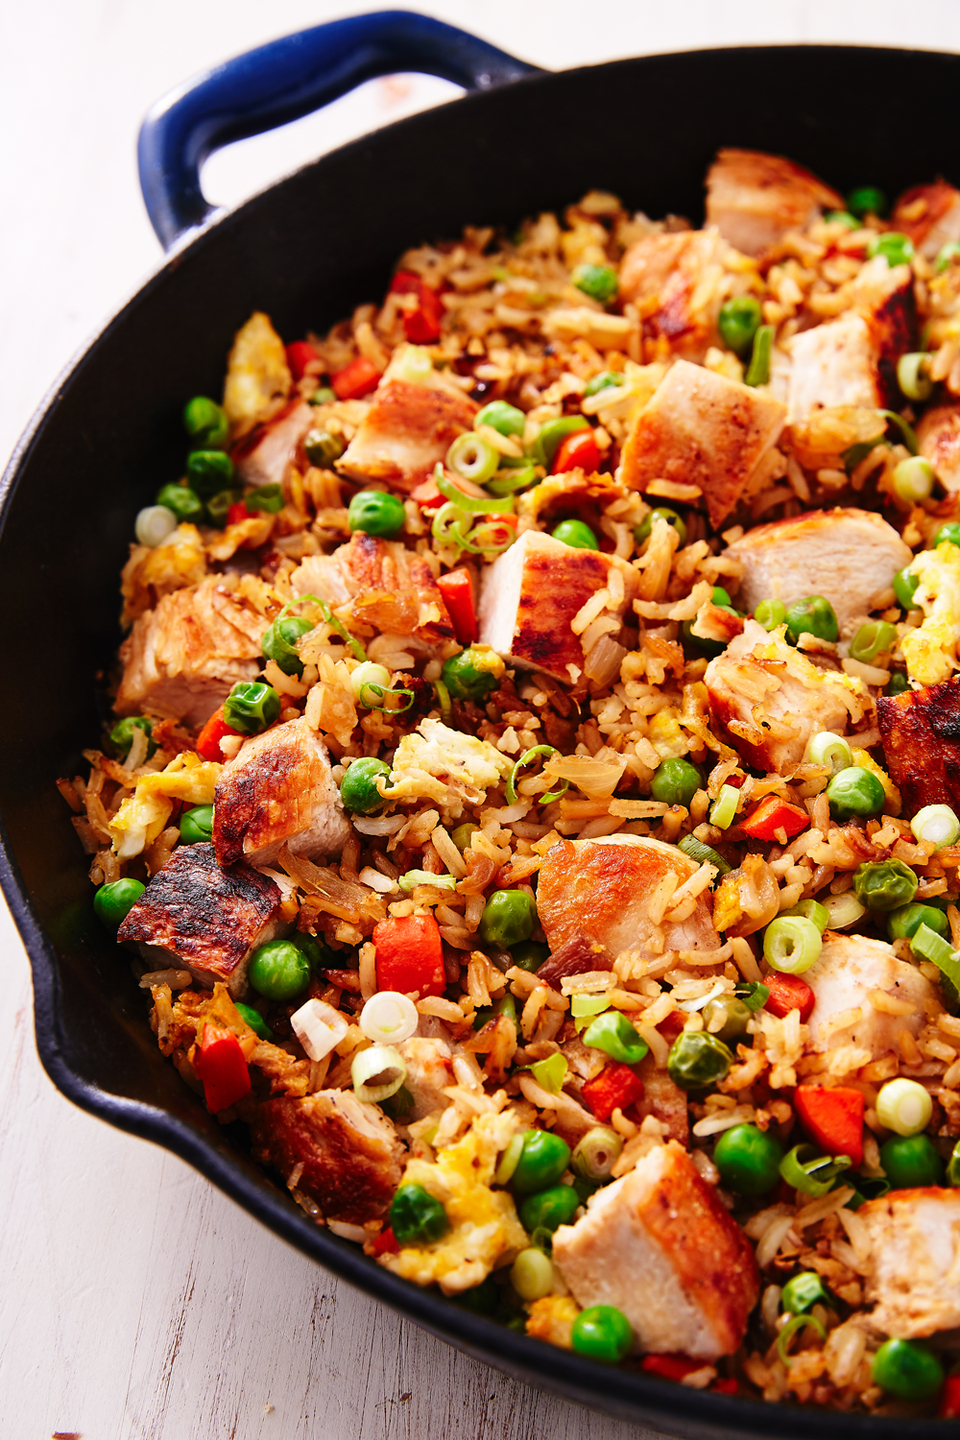 "<p>The comfort dish of Chinese food. </p><p>Get the recipe from <a href=""https://www.delish.com/cooking/recipe-ideas/a25635966/chicken-fried-rice-recipe/"" rel=""nofollow noopener"" target=""_blank"" data-ylk=""slk:Delish"" class=""link rapid-noclick-resp"">Delish</a>. </p>"